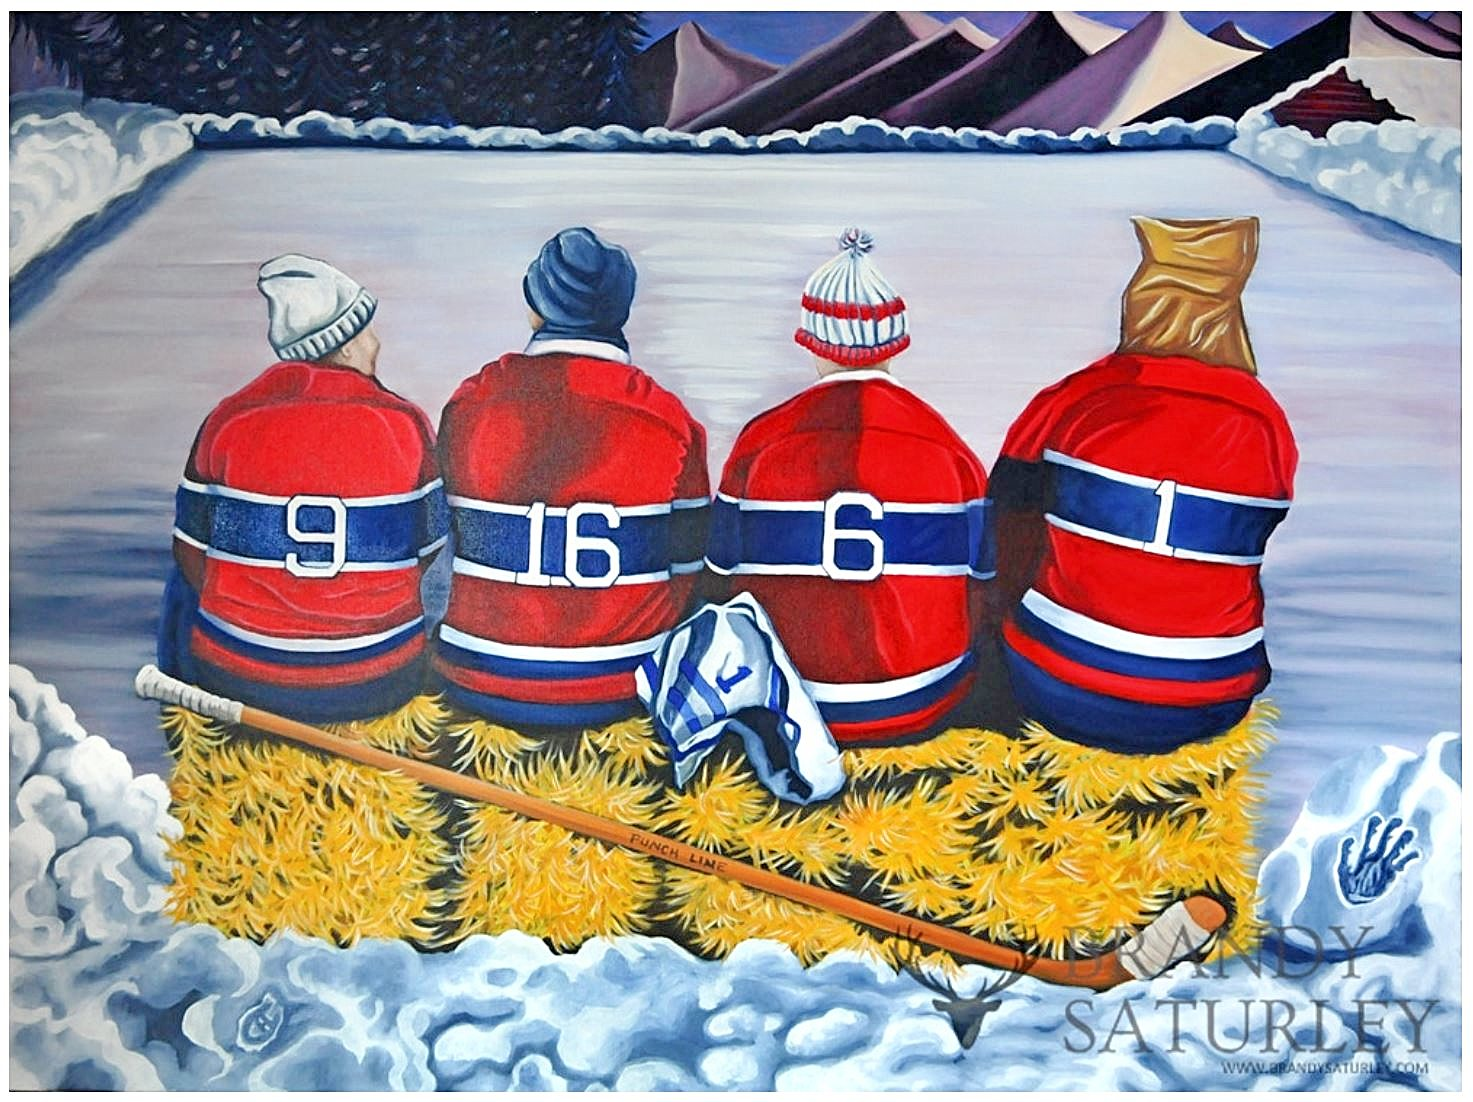 painting of iconic hockey line Punch Line on a bench on the ODR by Brandy Saturley